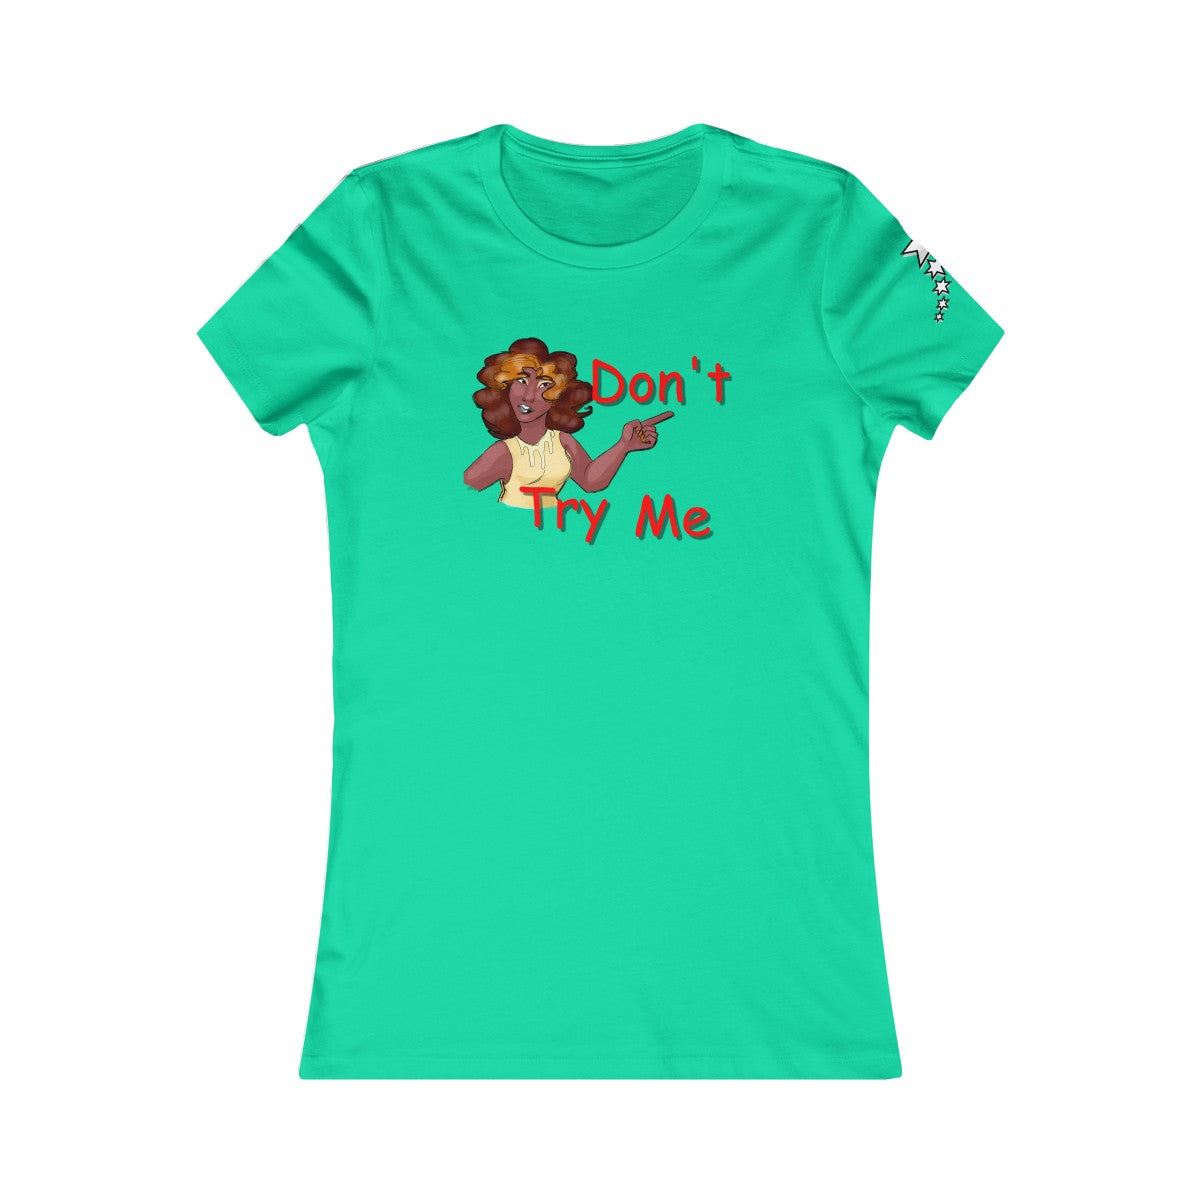 Women's Favorite Tee - Don't Try Me